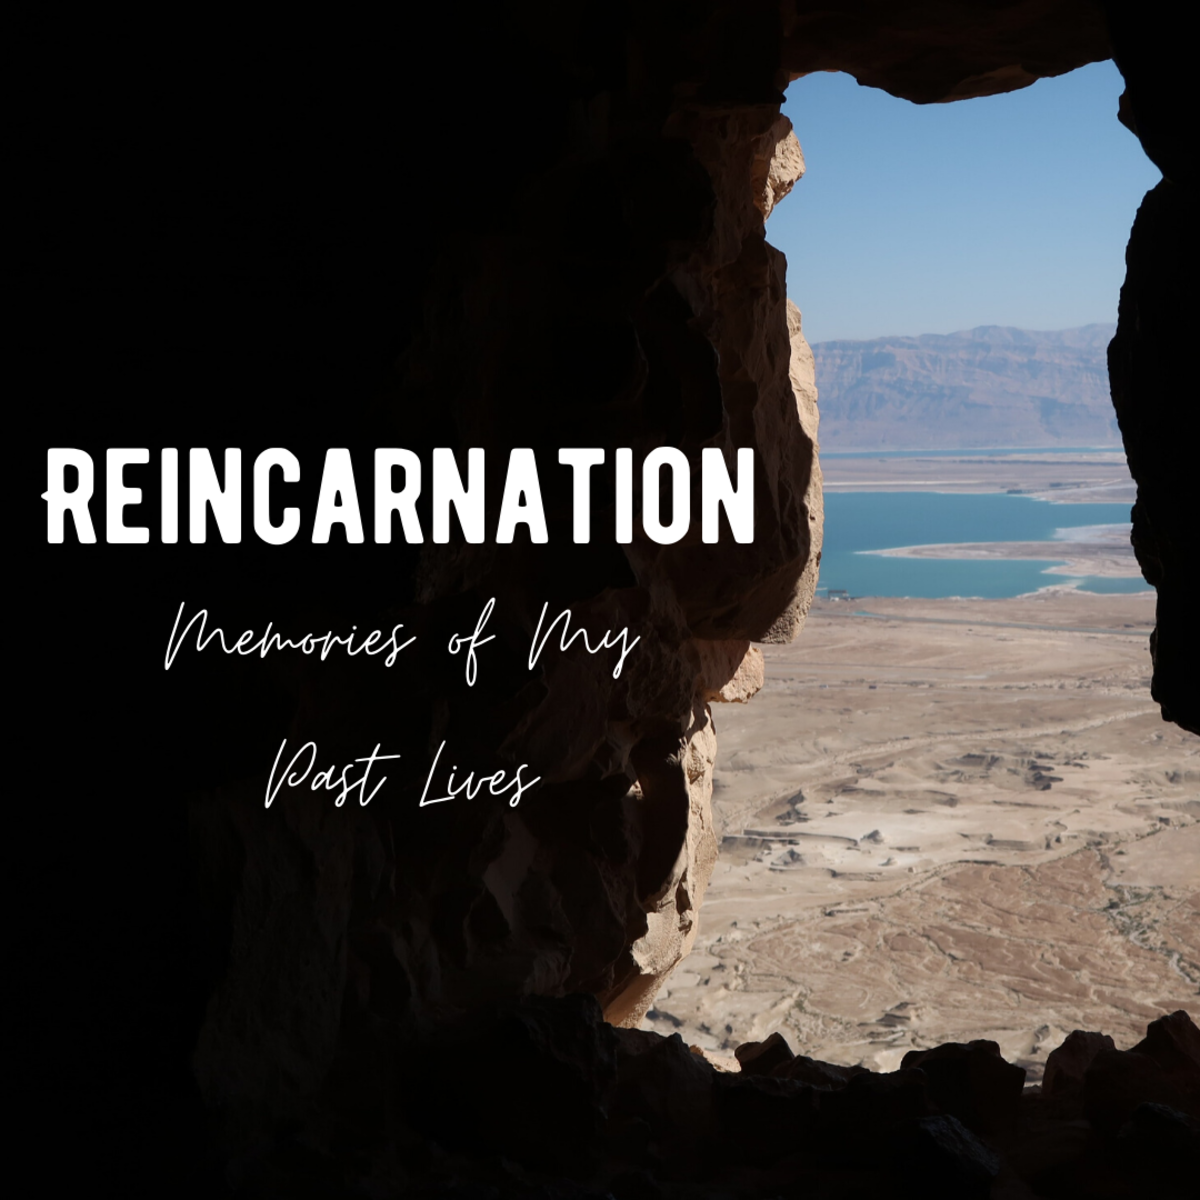 Learn more about reincarnation, and explore my personal experiences with my past lives.